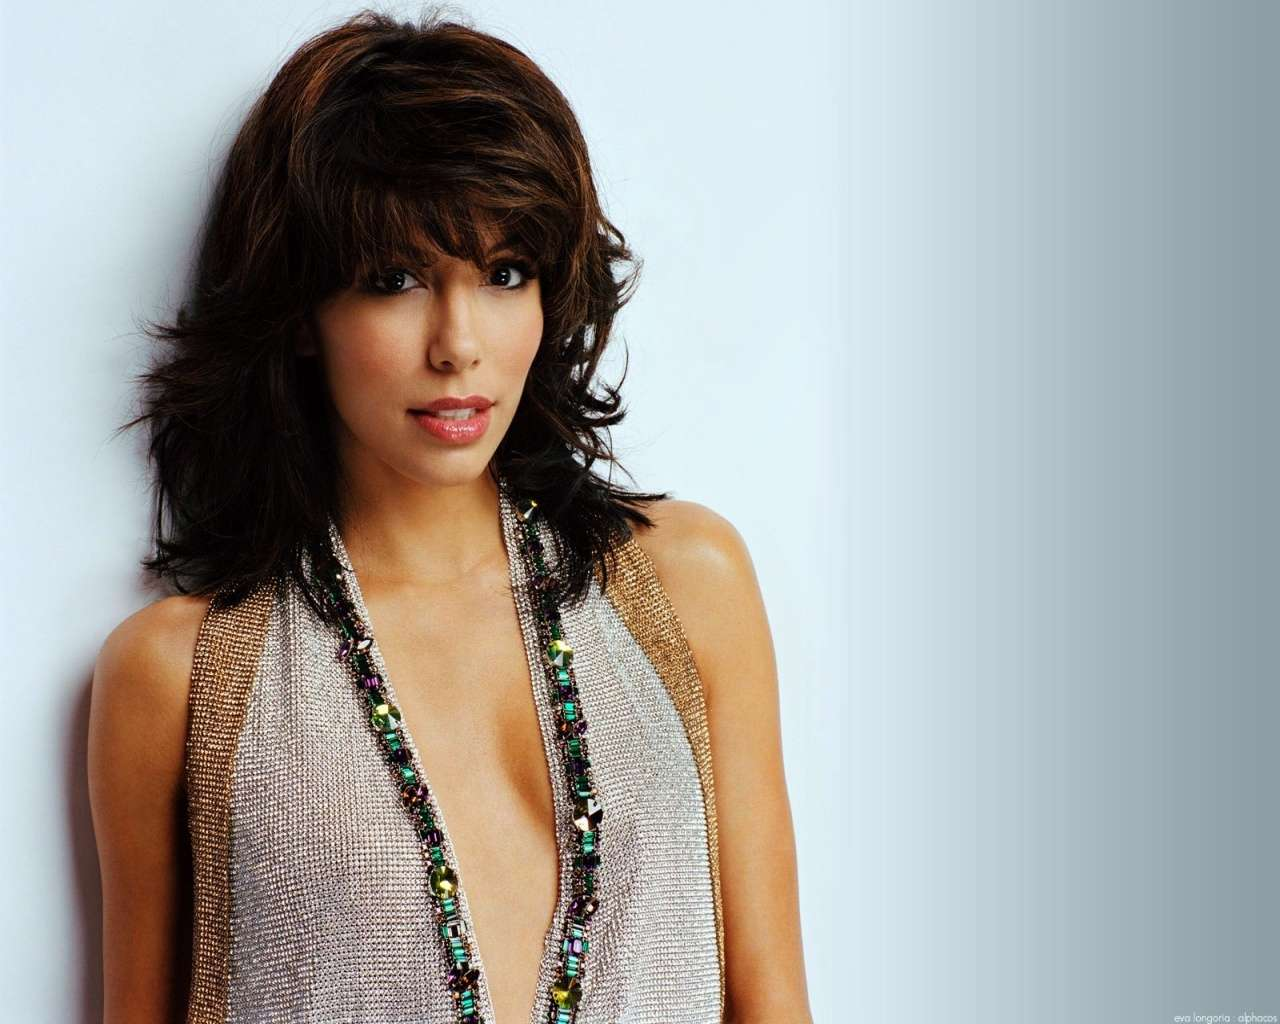 Most Beautiful Girl With Flowers Hd Wallpapers Eva Longoria Hd Hd Wallpapers